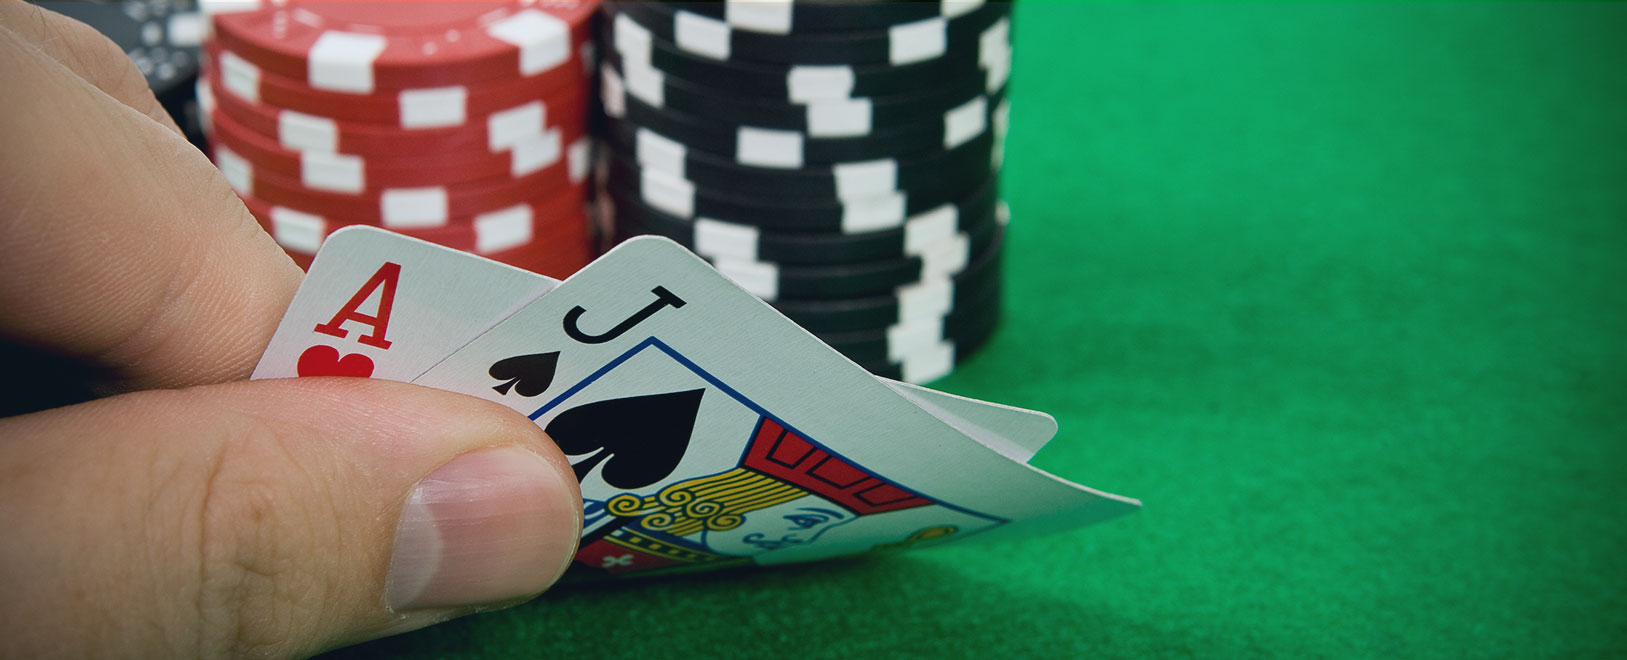 Blackjack Tips: How to Count cards in Blackjack